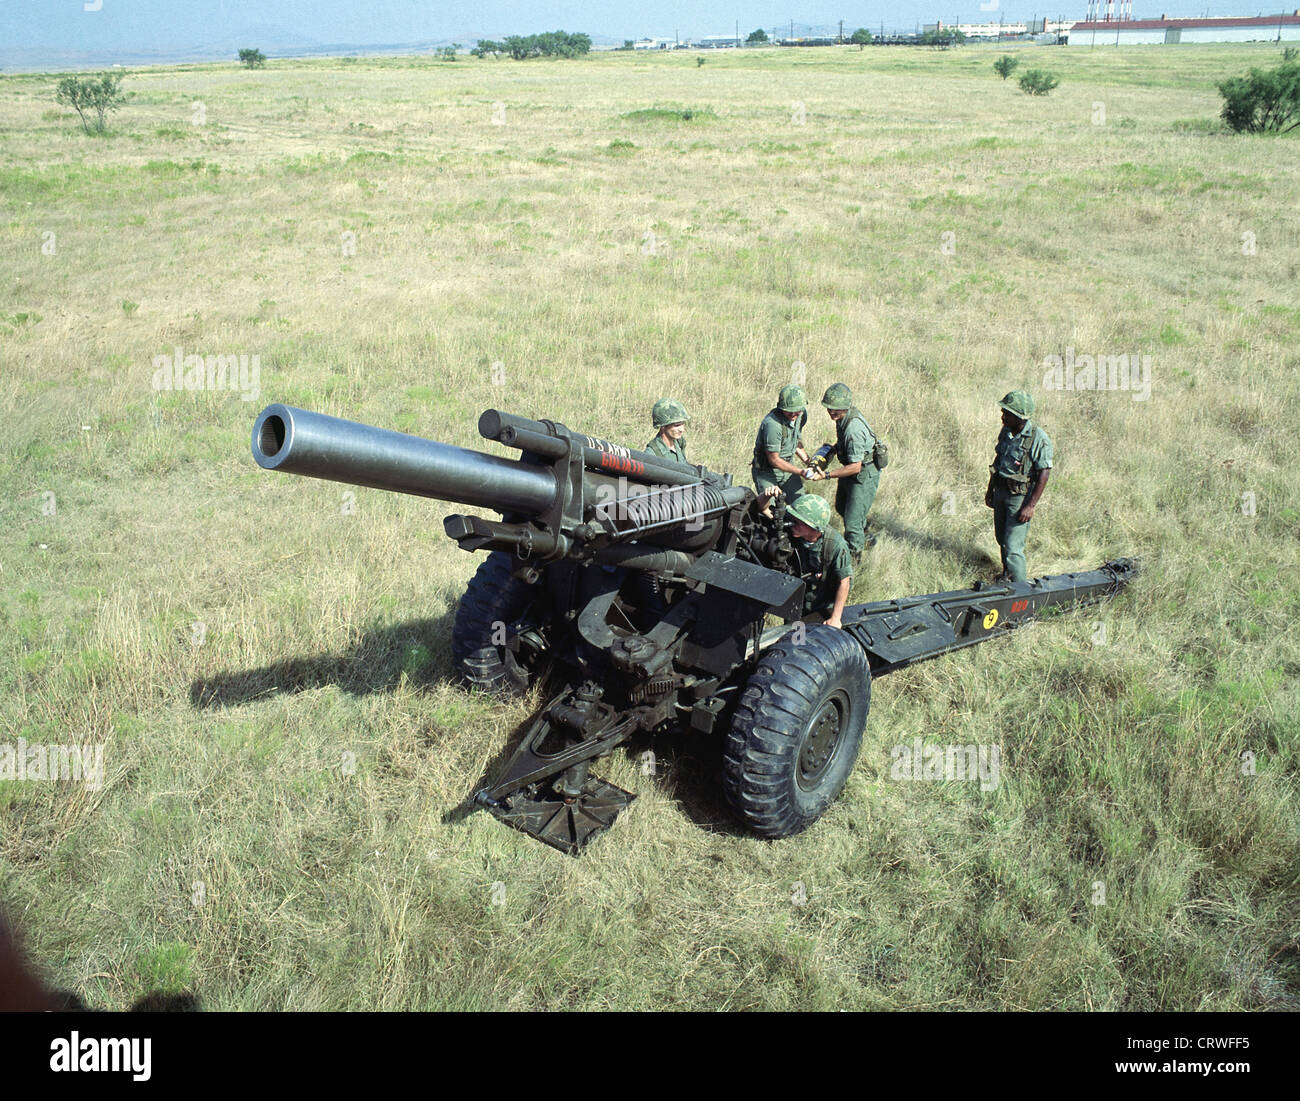 An M114 155 mm Howitzer in firing position. - Stock Image